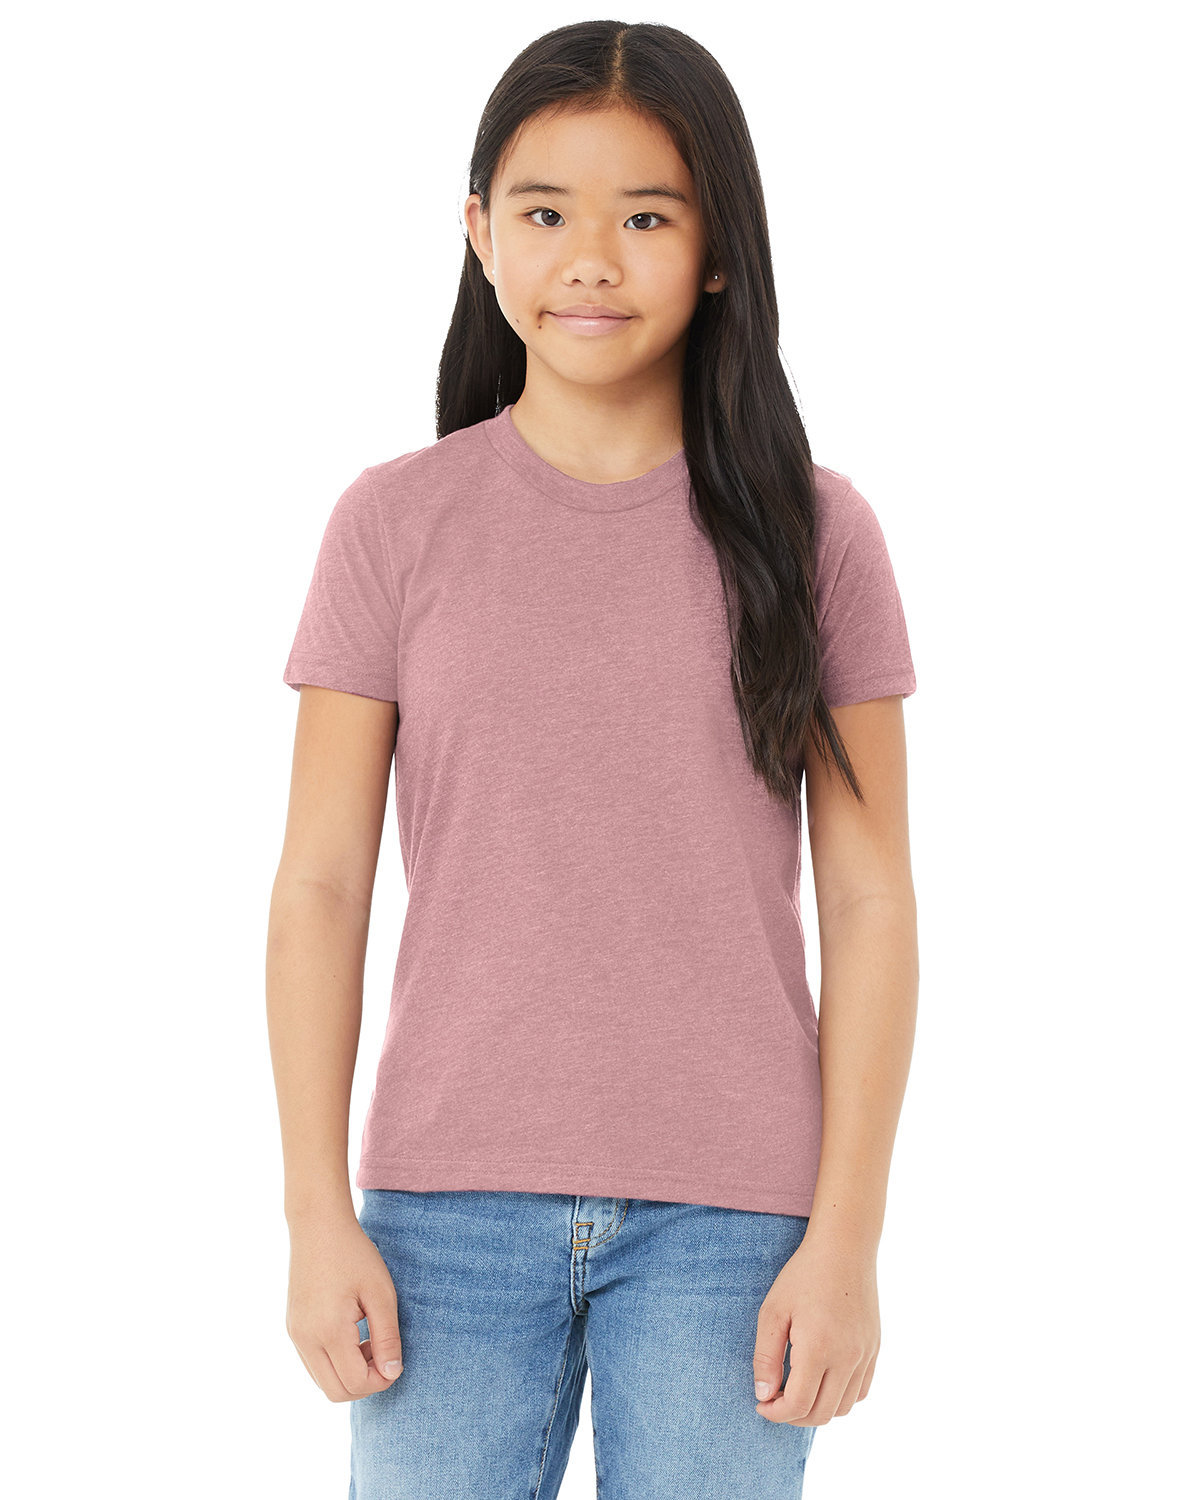 Bella + Canvas Youth Jersey T-Shirt HEATHER ORCHID